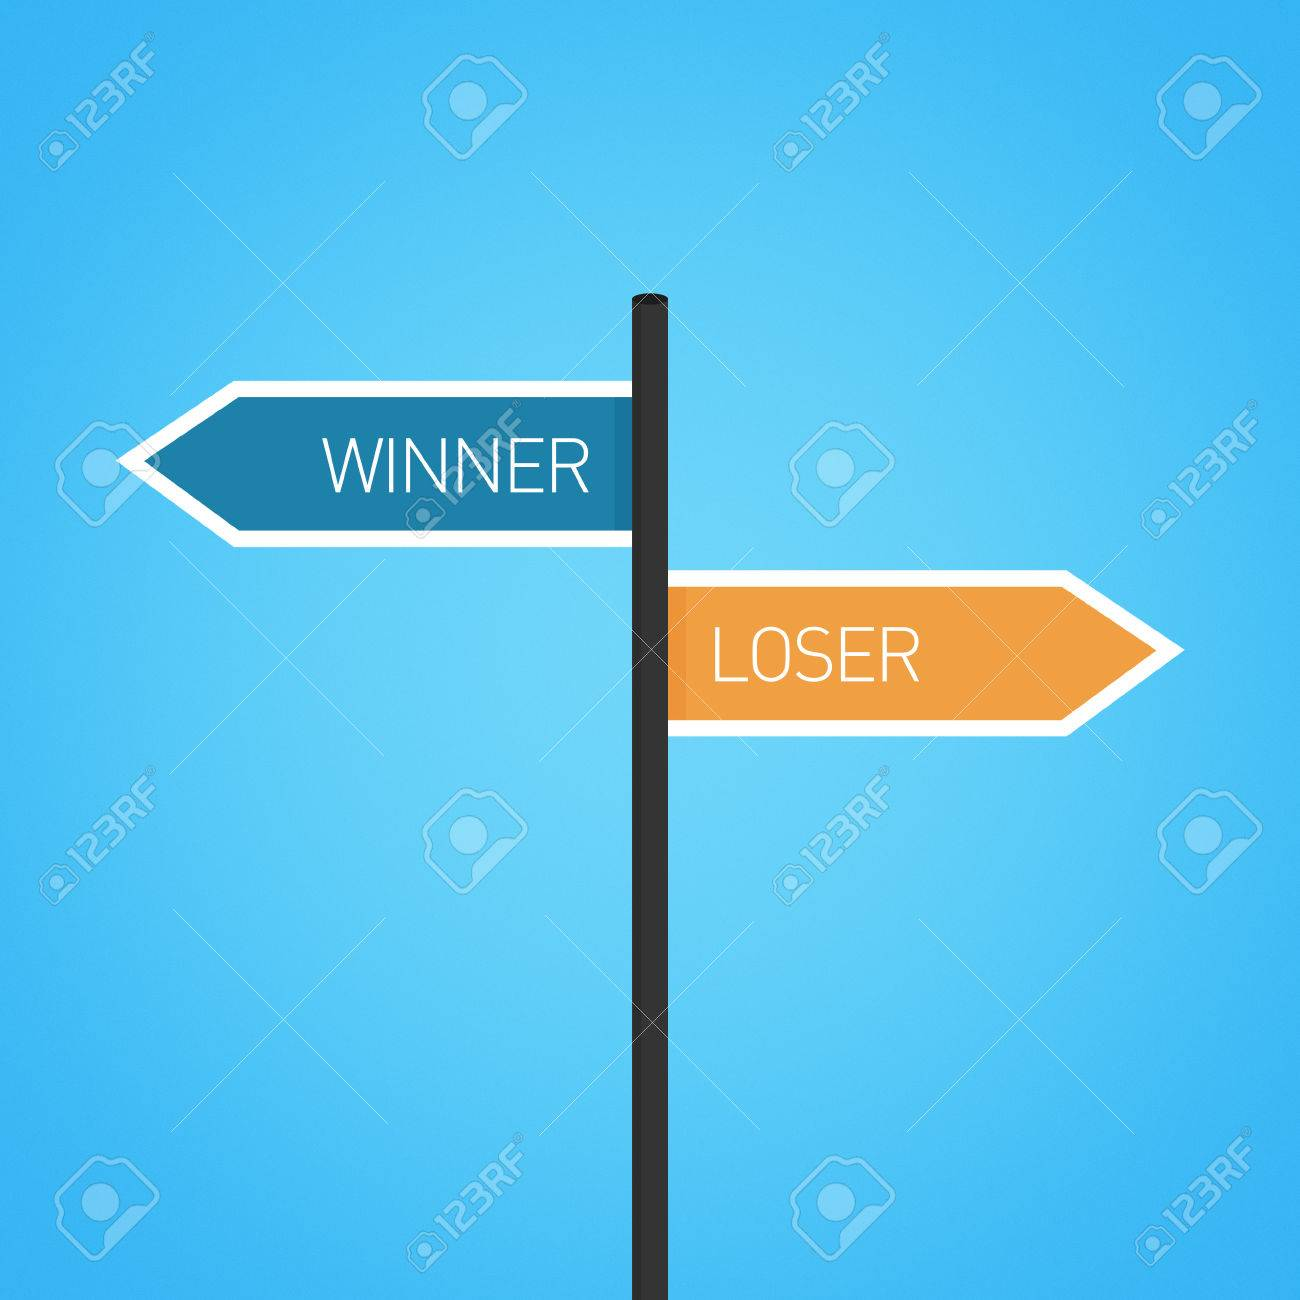 Winner vs loser choice road sign concept, flat design